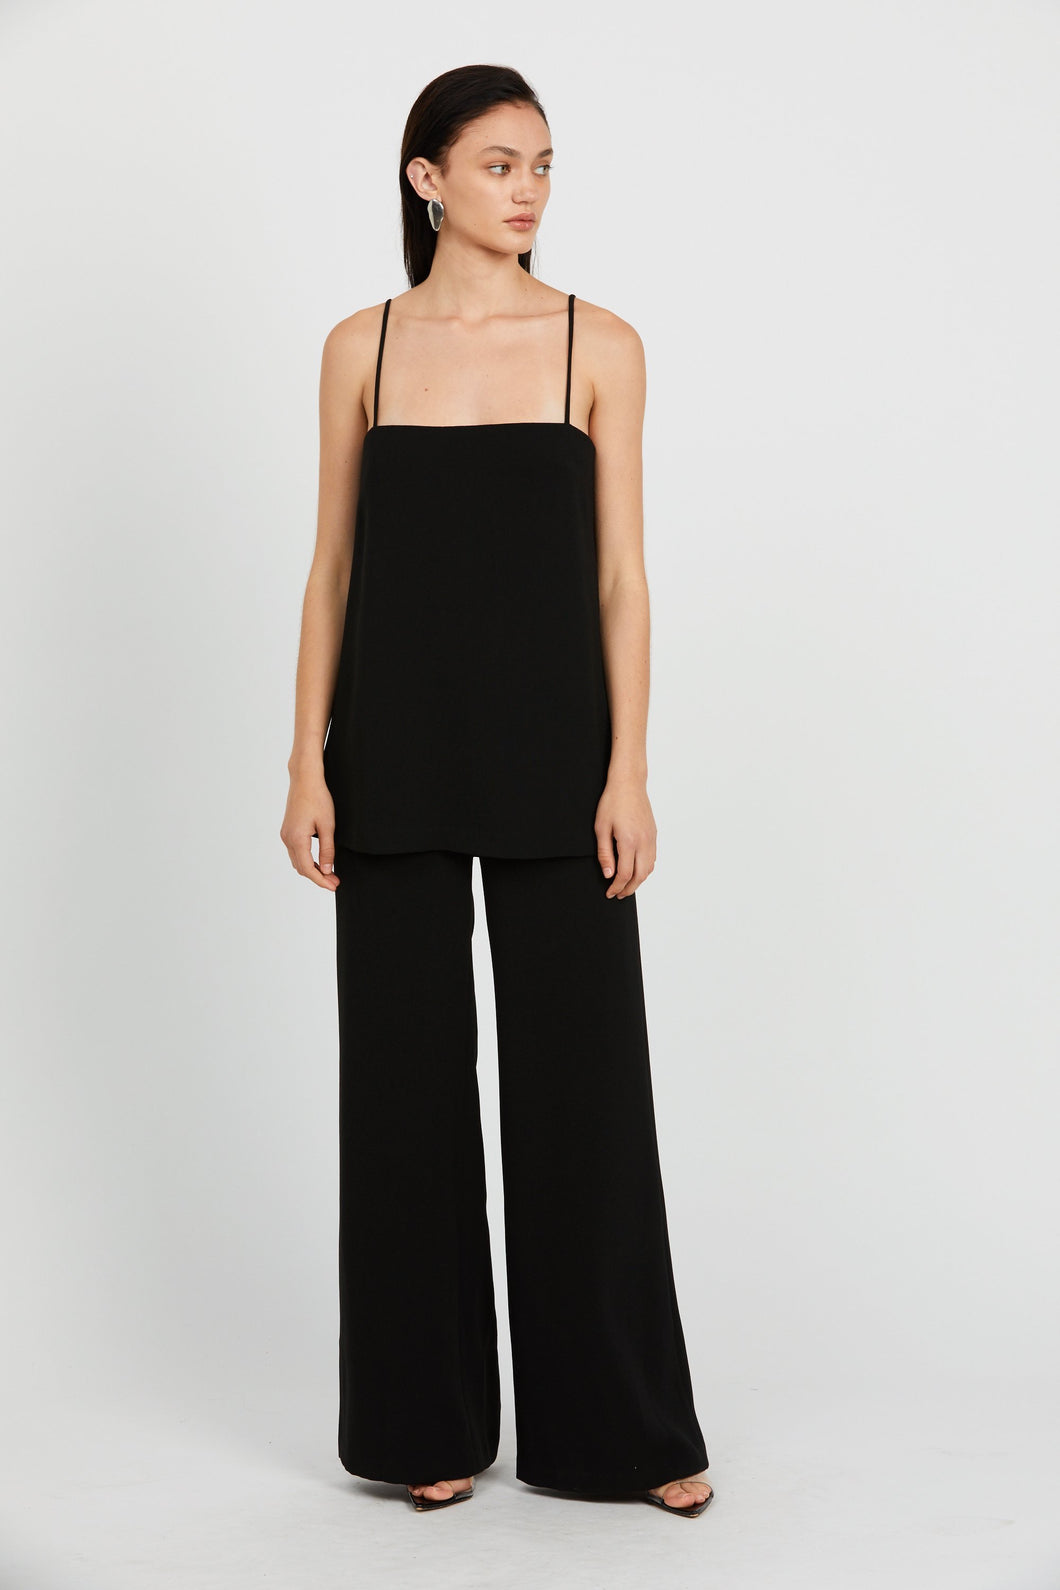 Third Form Double Up Jumpsuit